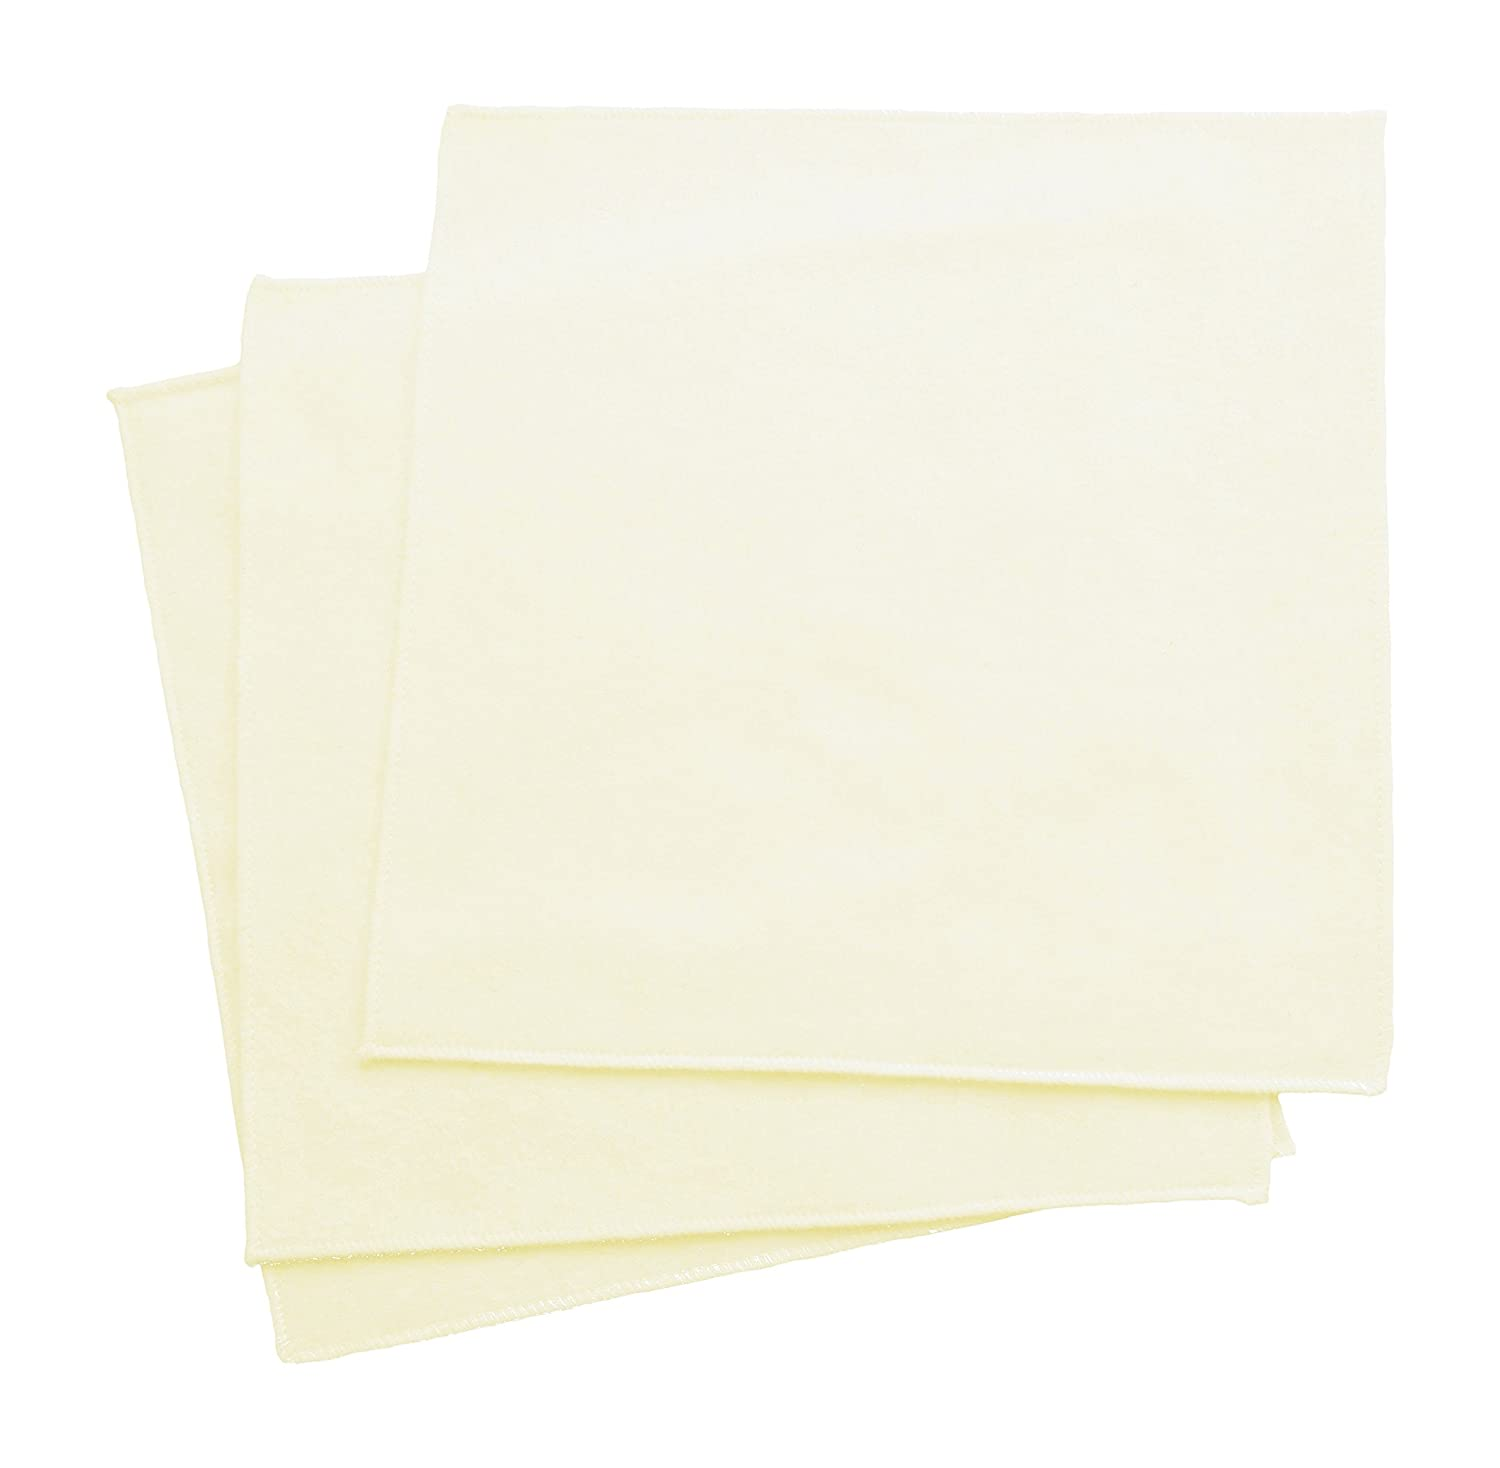 Organic Cotton Flannel Handkerchiefs, Large 14 x 14, Cream (Set of 3) Large 14 x 14 TOHCLGFL